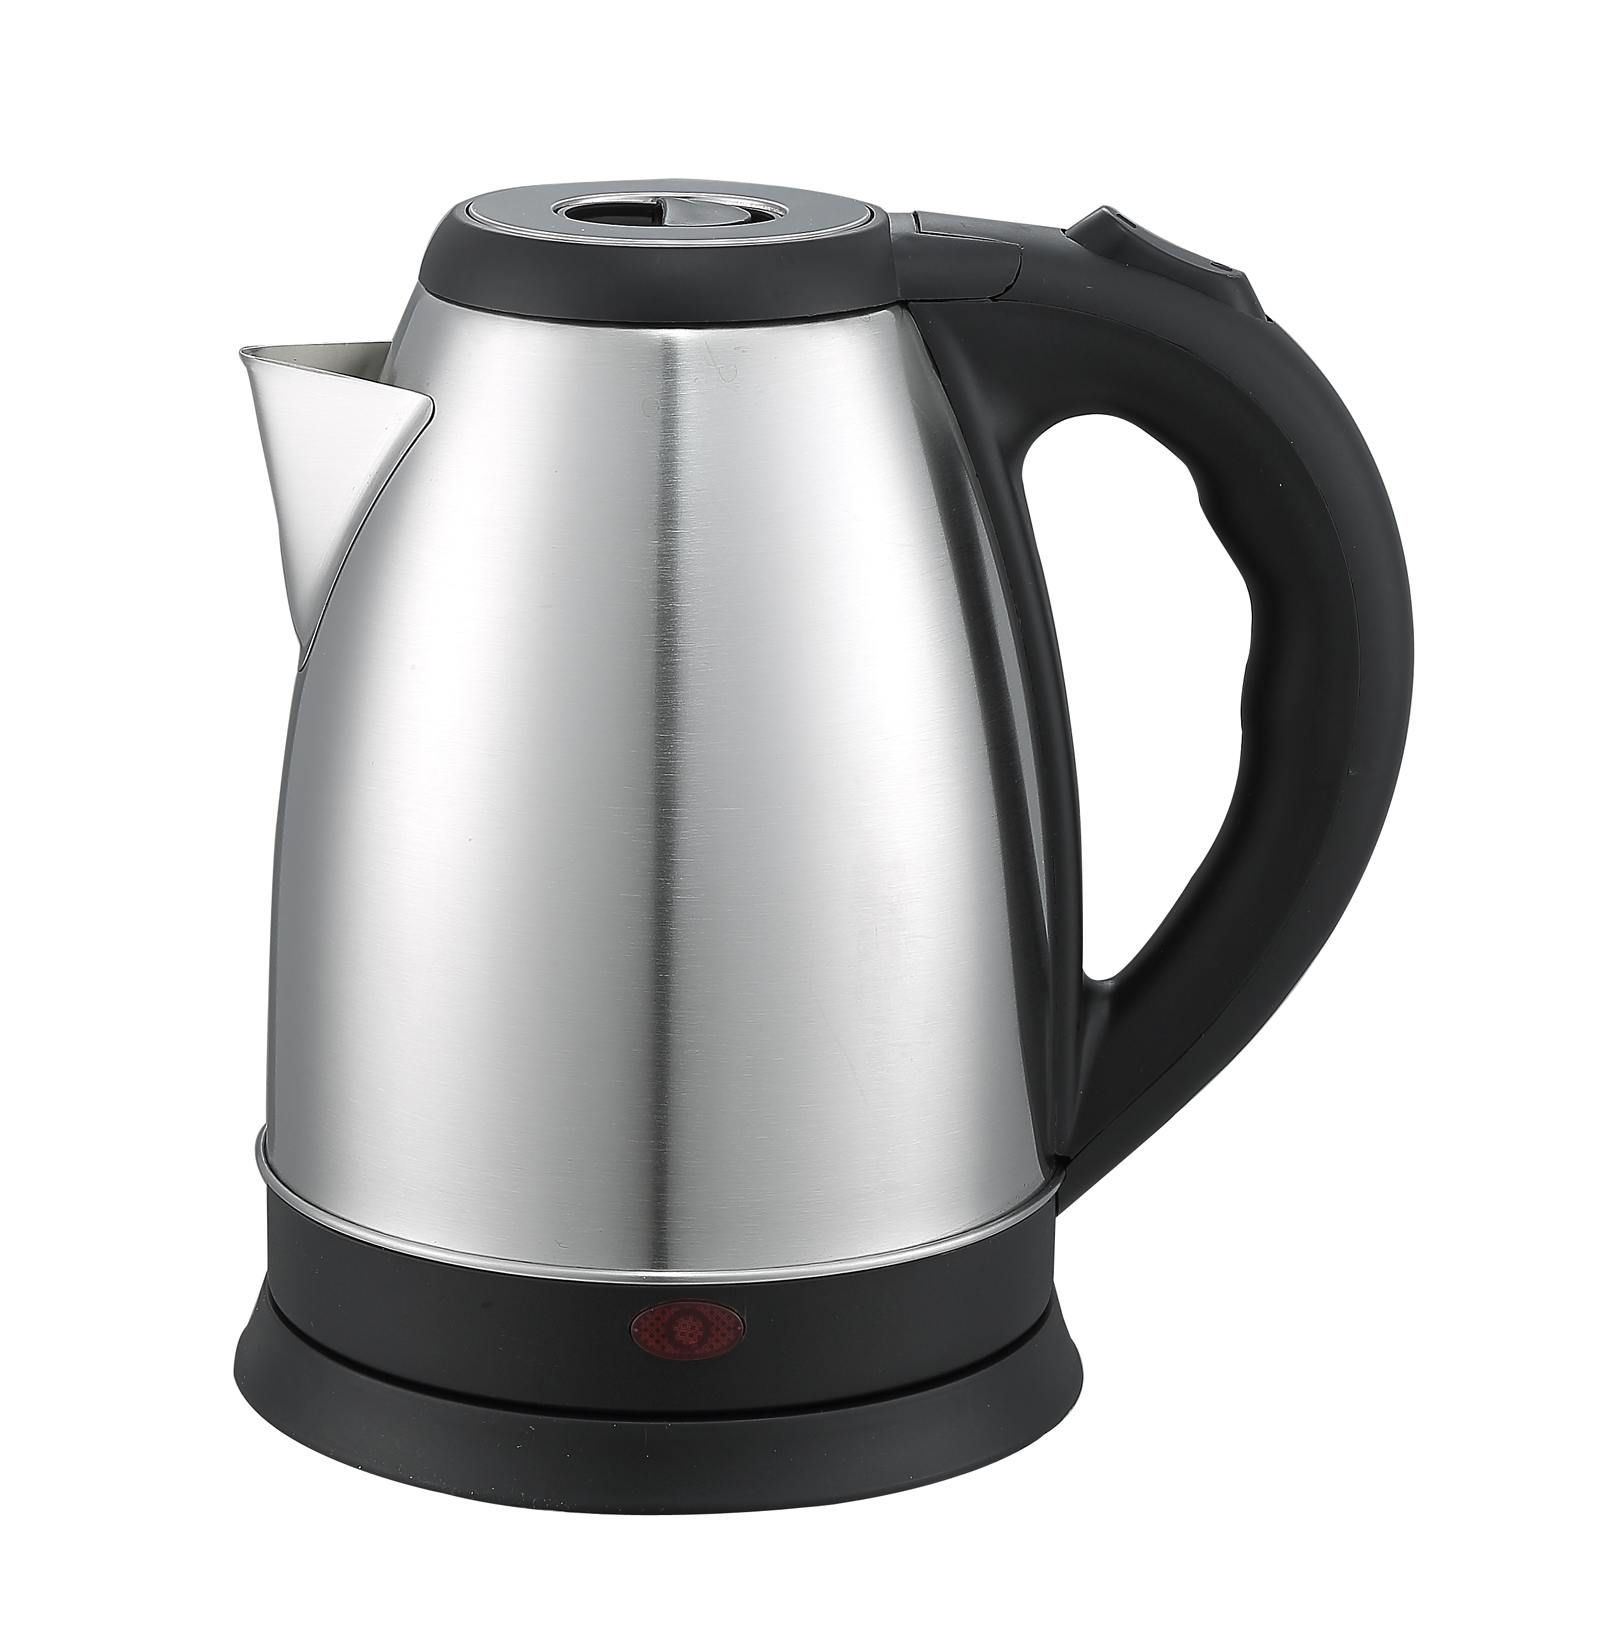 KT-0337 Stainless steel Kettle